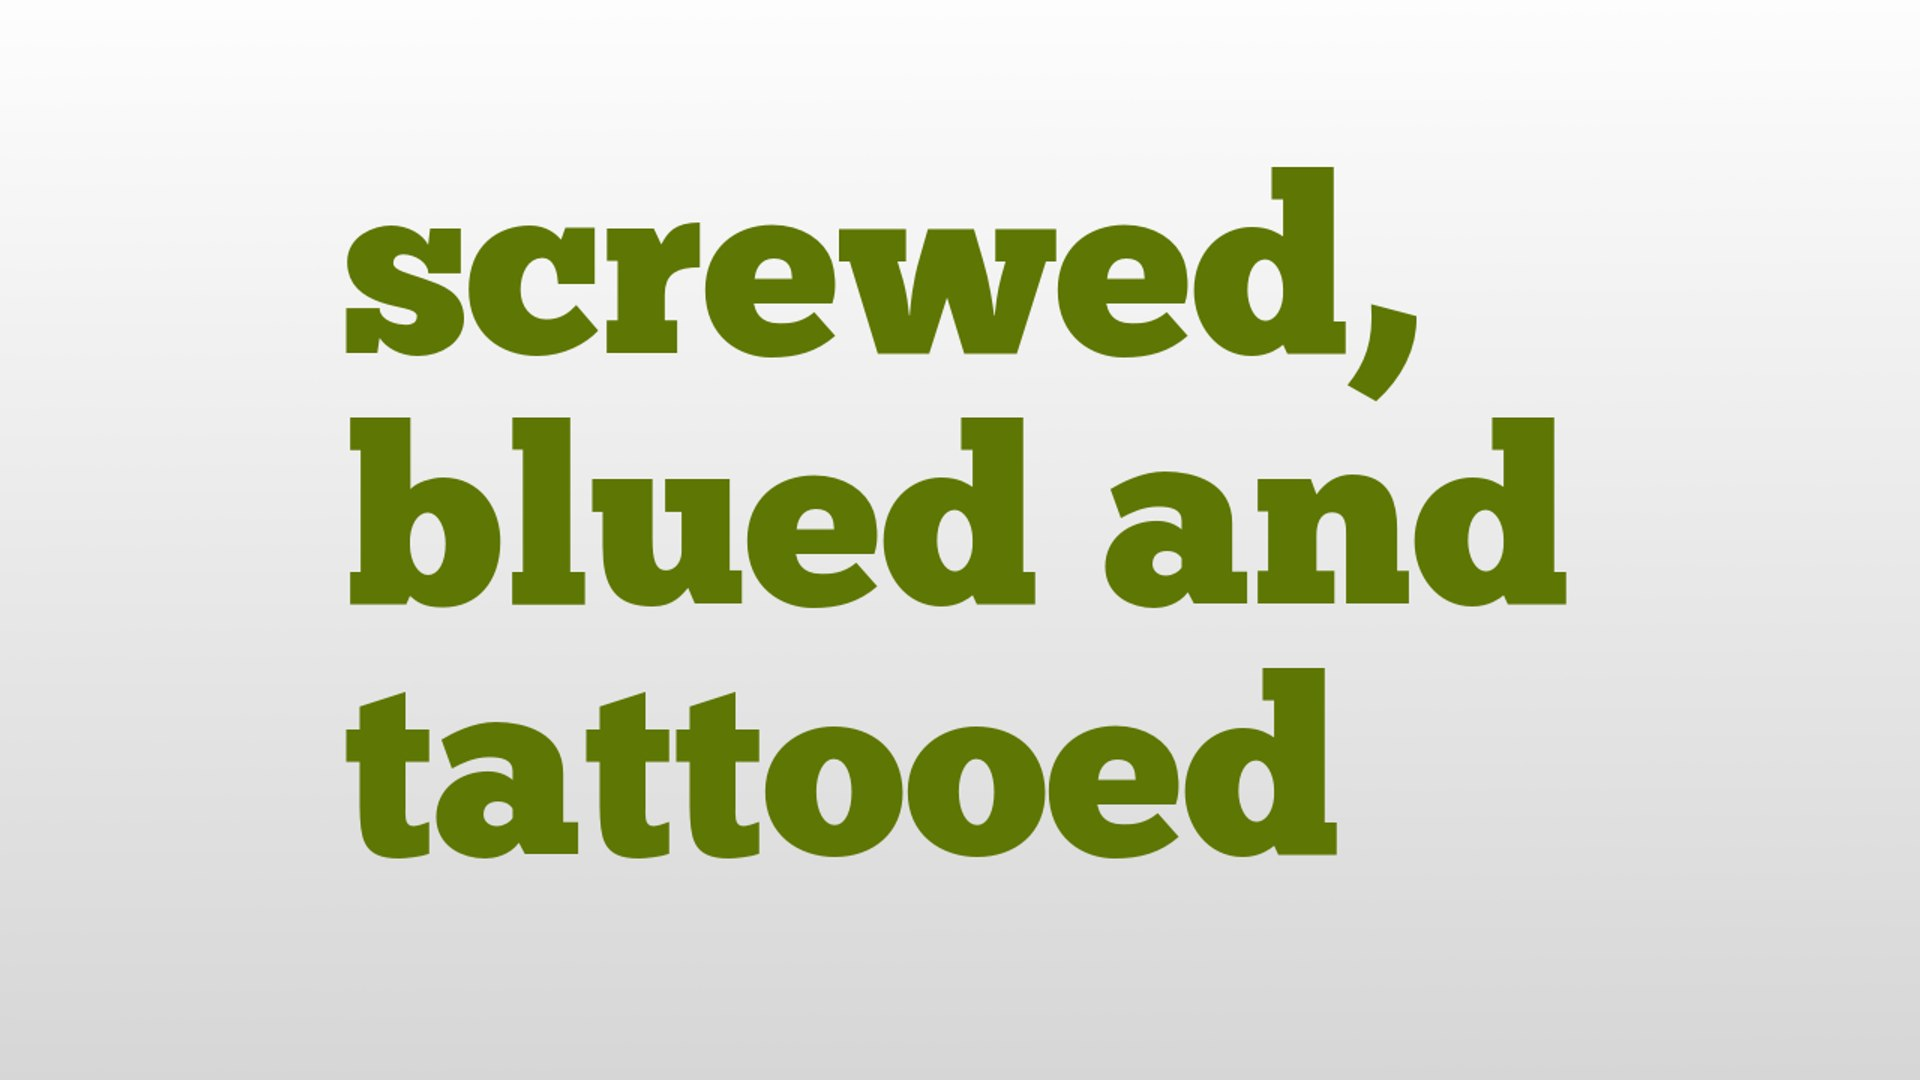 screwed, blued and tattooed meaning and pronunciation - video Dailymotion